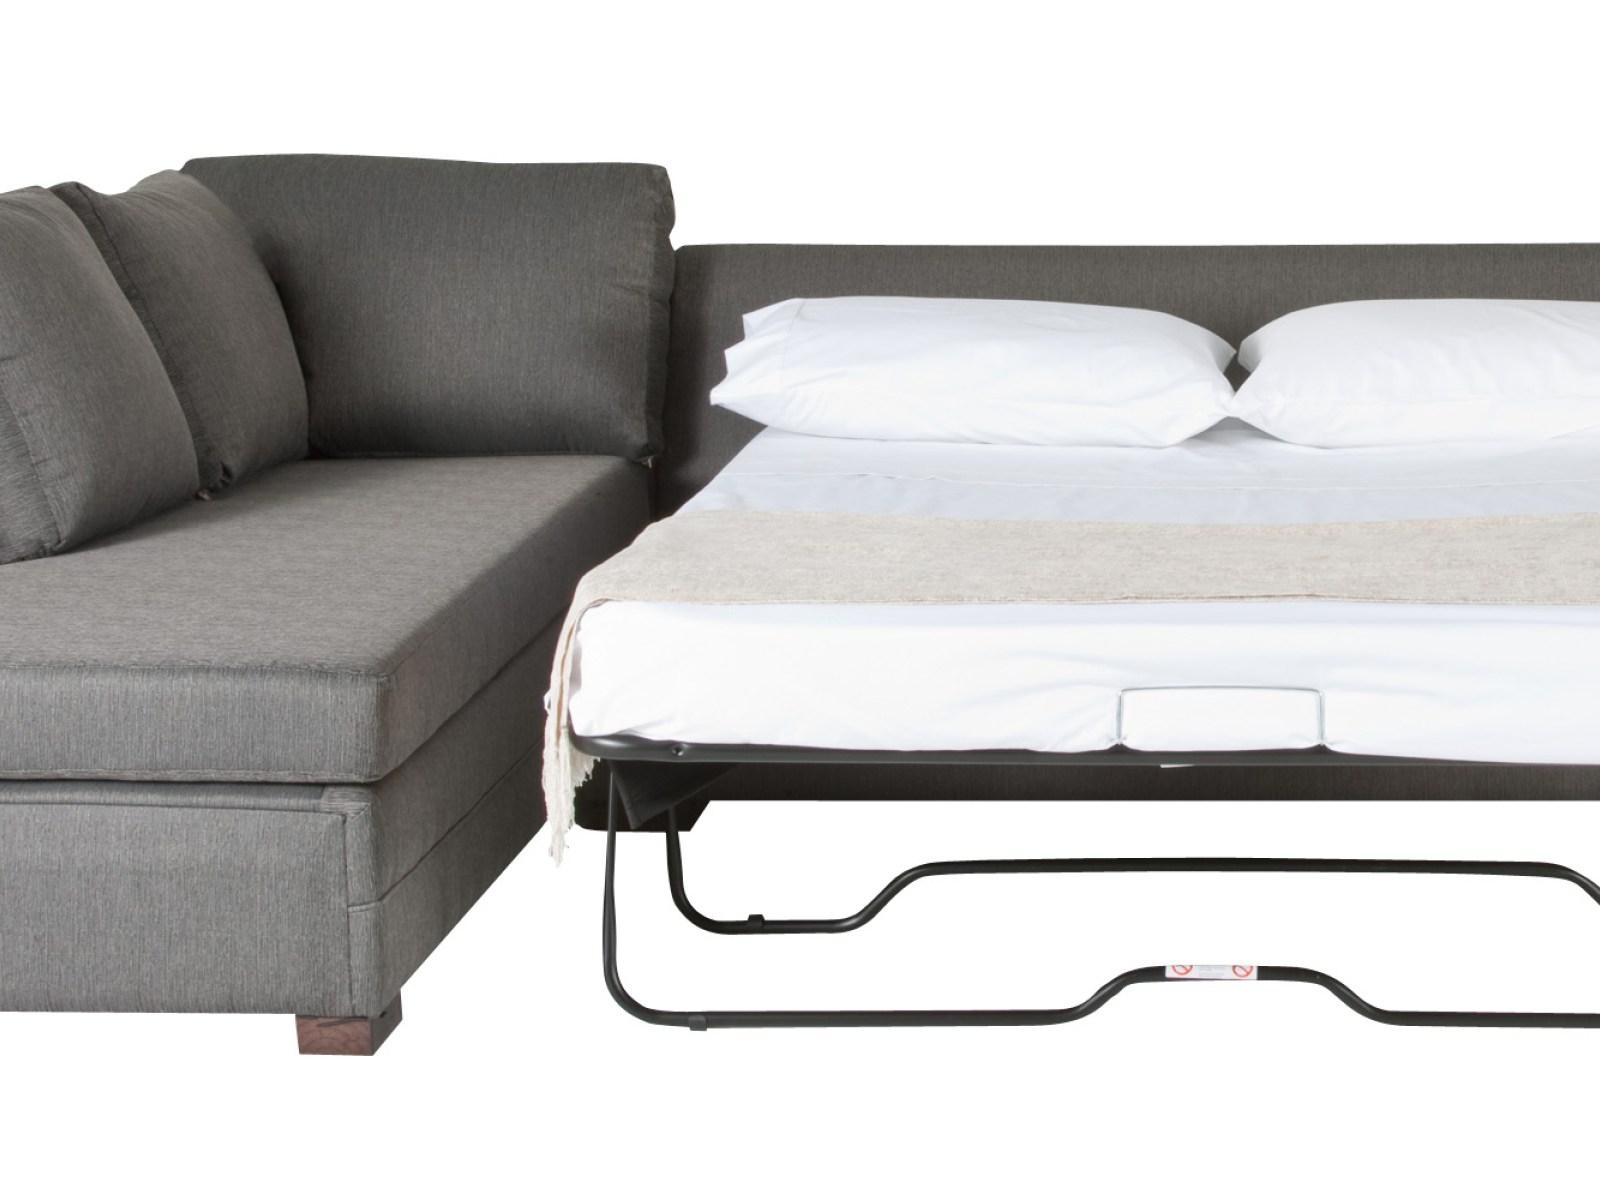 ▻ Sofa : 15 Leather Sectional Sleeper Sofa With Chaise Sleeper In Ikea Sleeper Sofa Sectional (Image 1 of 20)